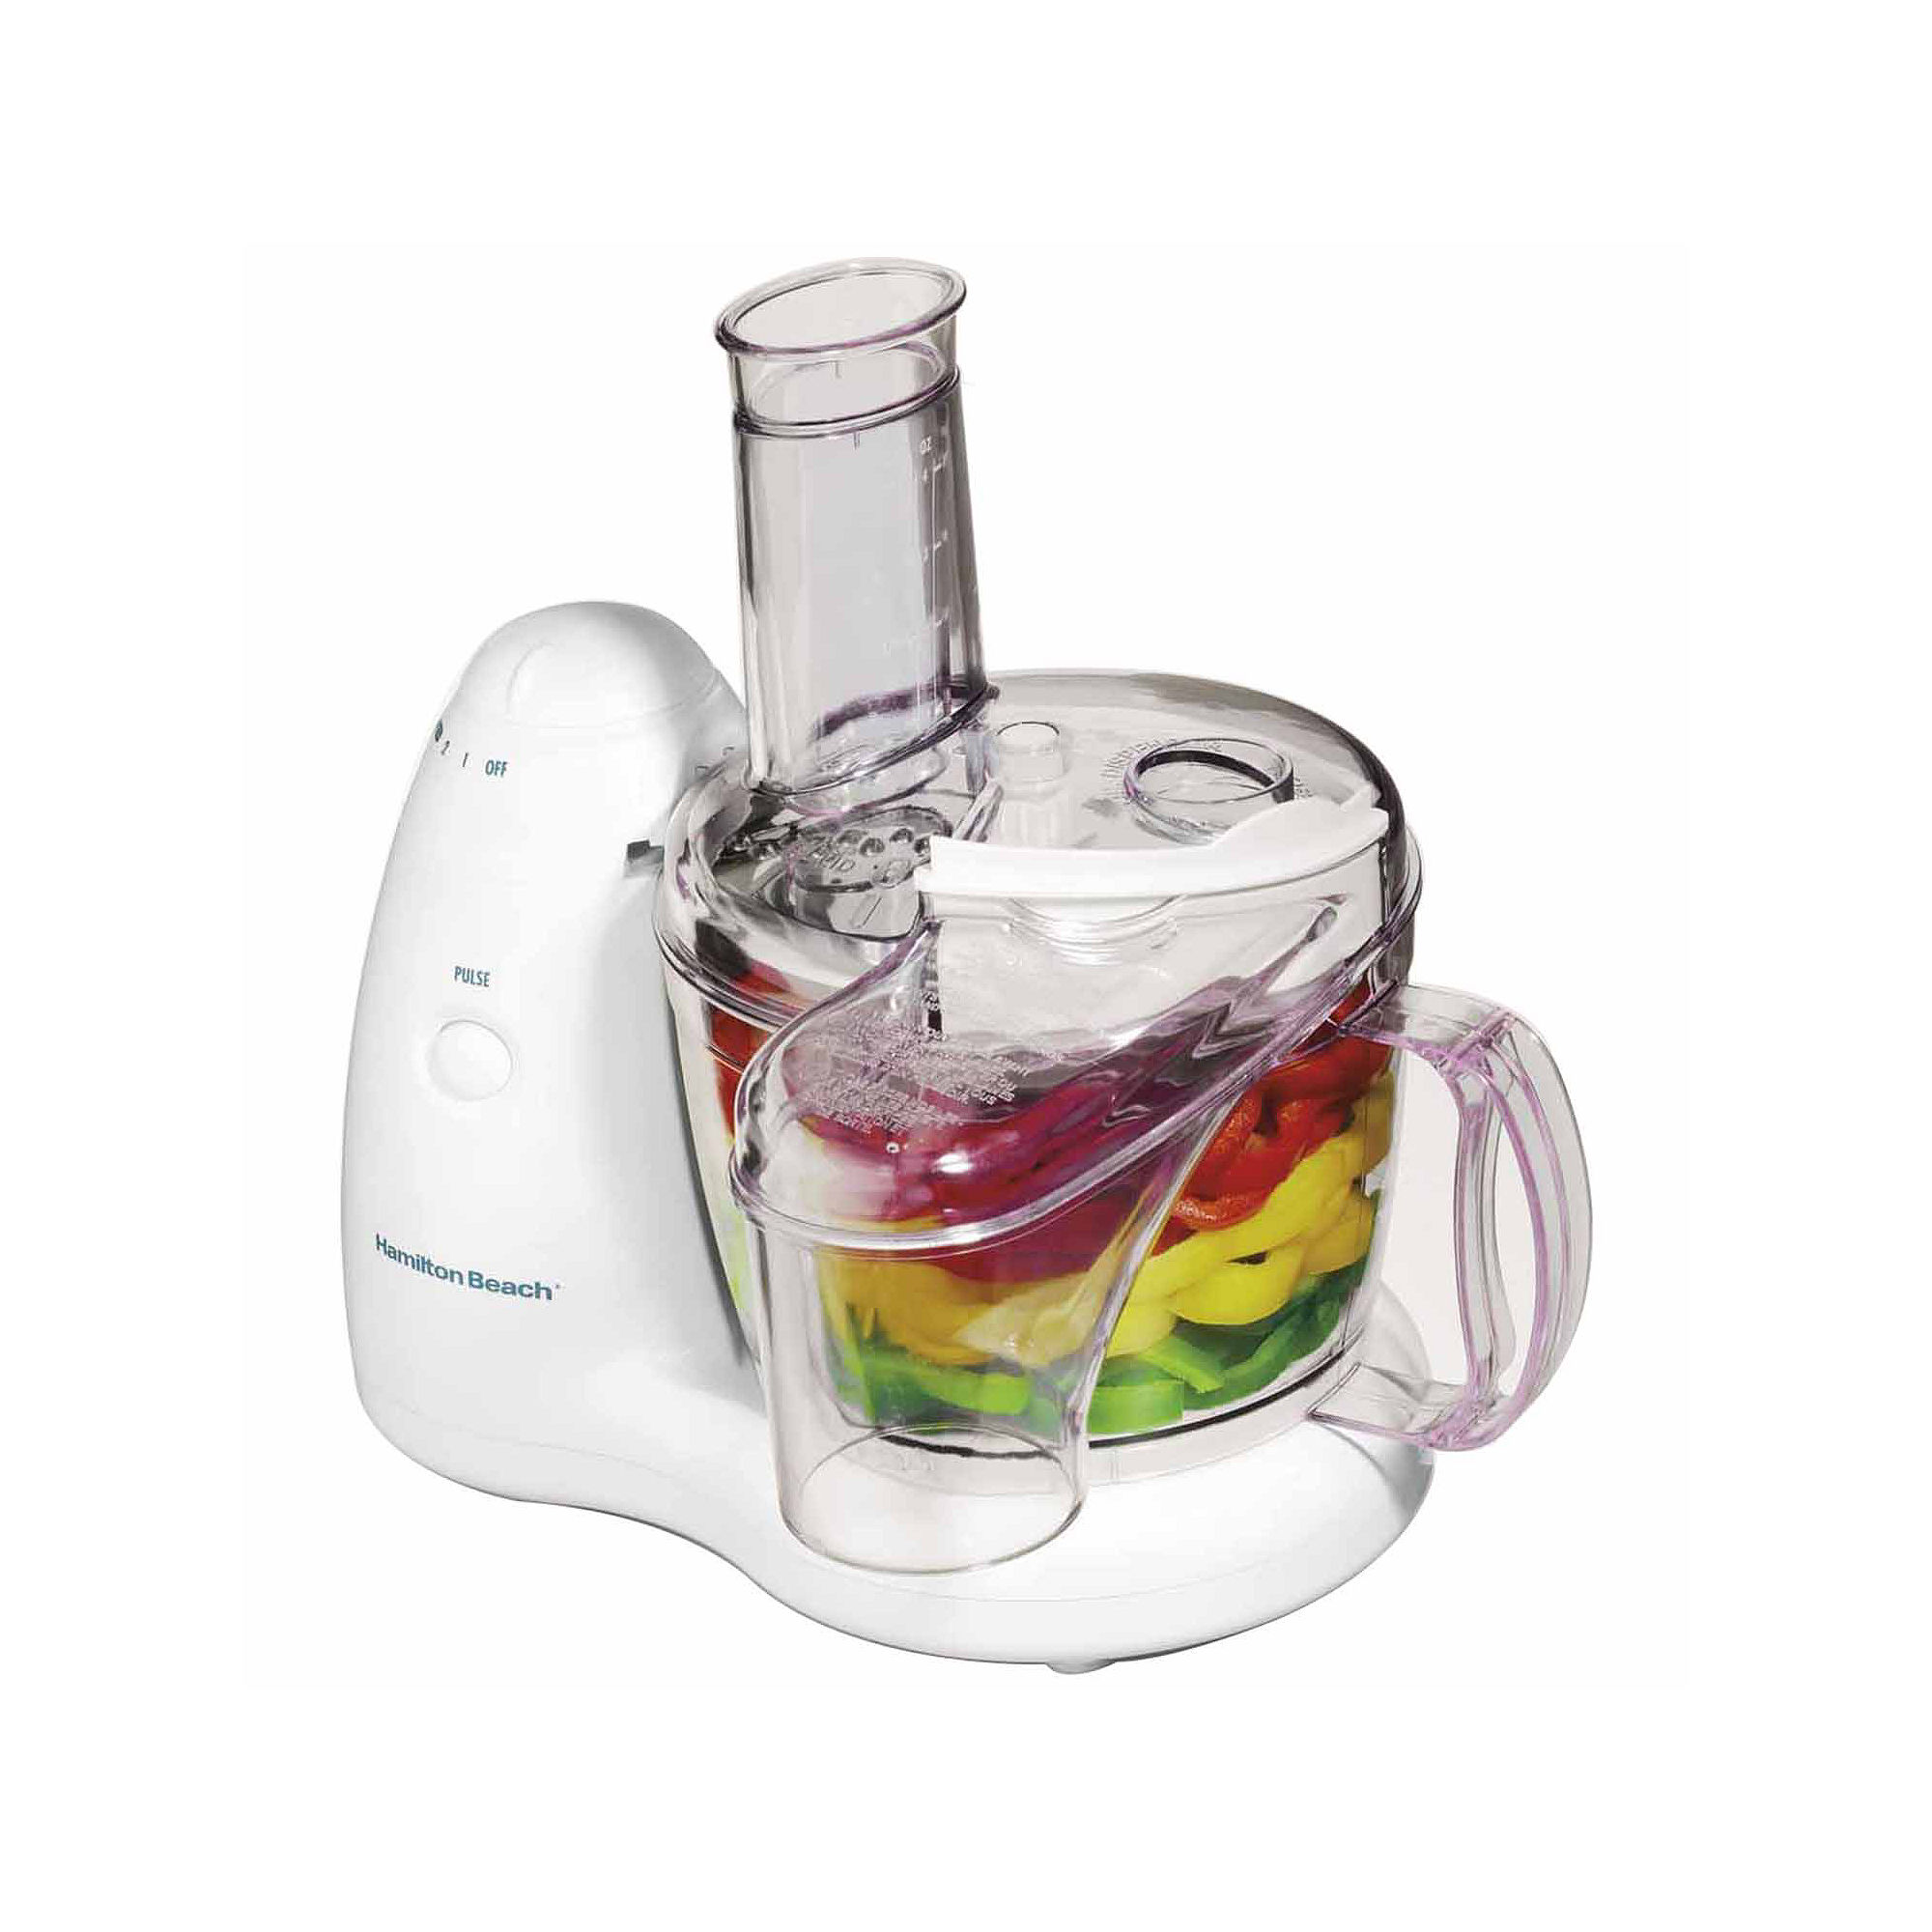 Hamilton Beach PrepStar 8 Cup Food Processor